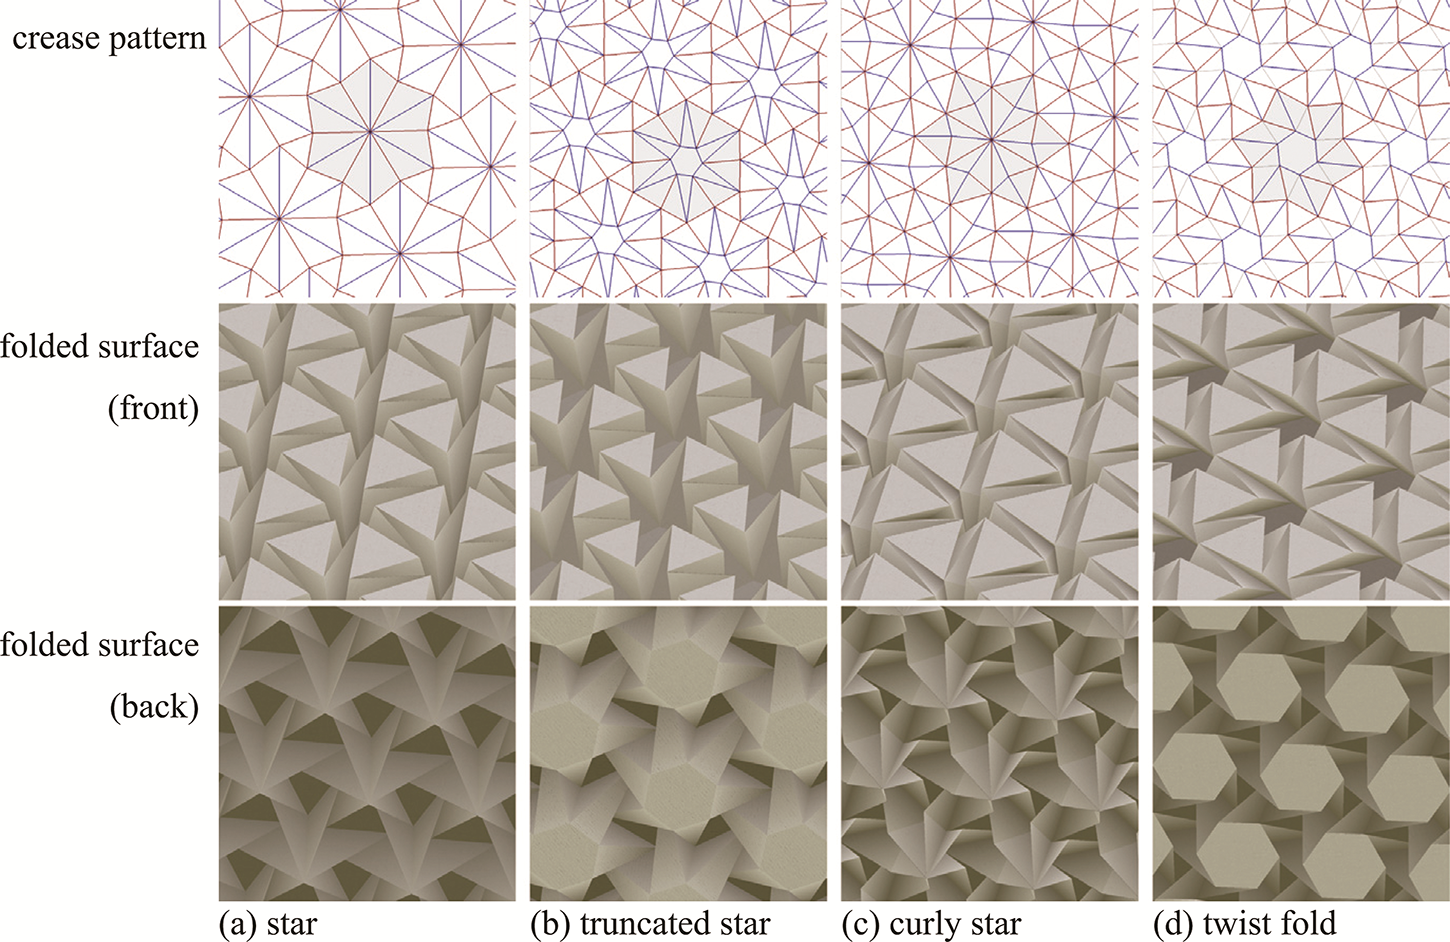 Designing Freeform Origami Tessellations By Generalizing Reschs Patterns